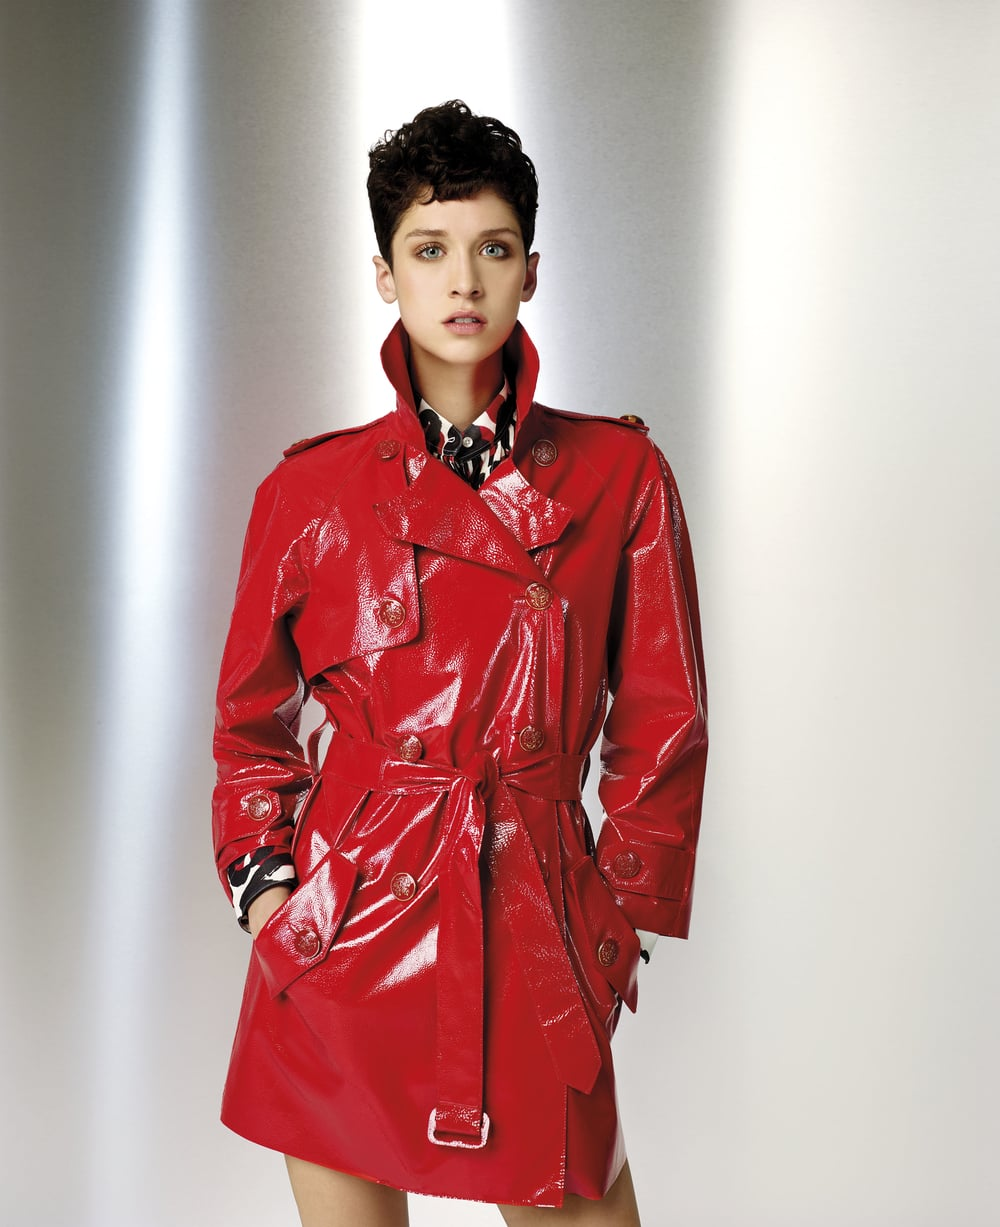 020_Patent_Leather_Trench.jpg